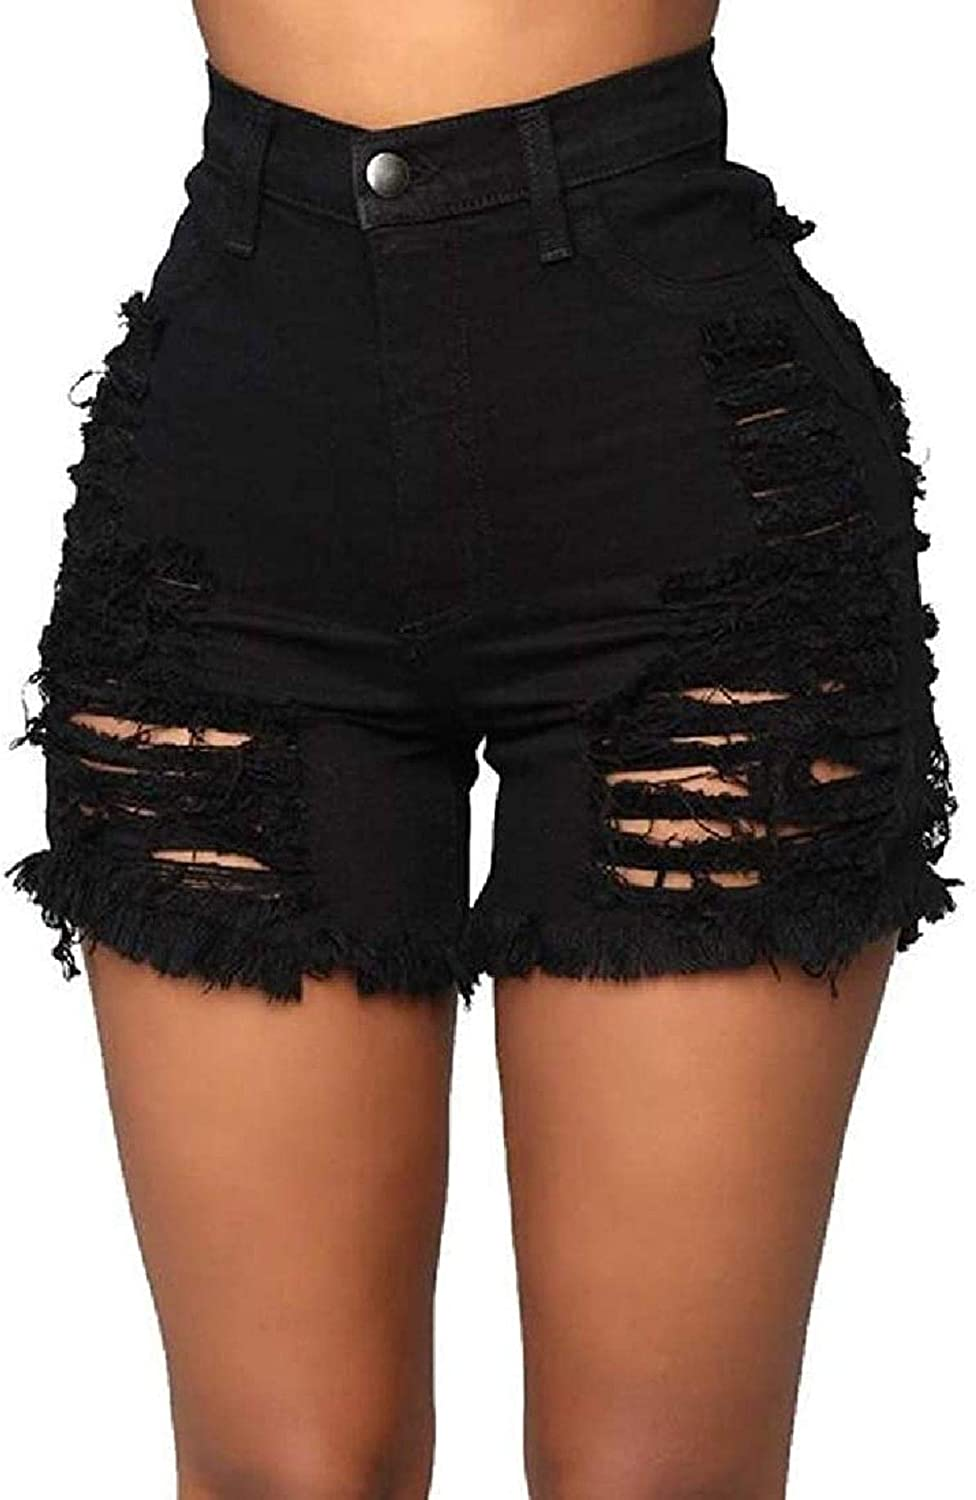 Women's Sexy Ripped Distressed Hollow Out Cut Off Cut-Out Solid Color Denim Shorts Jeans Hot Pants